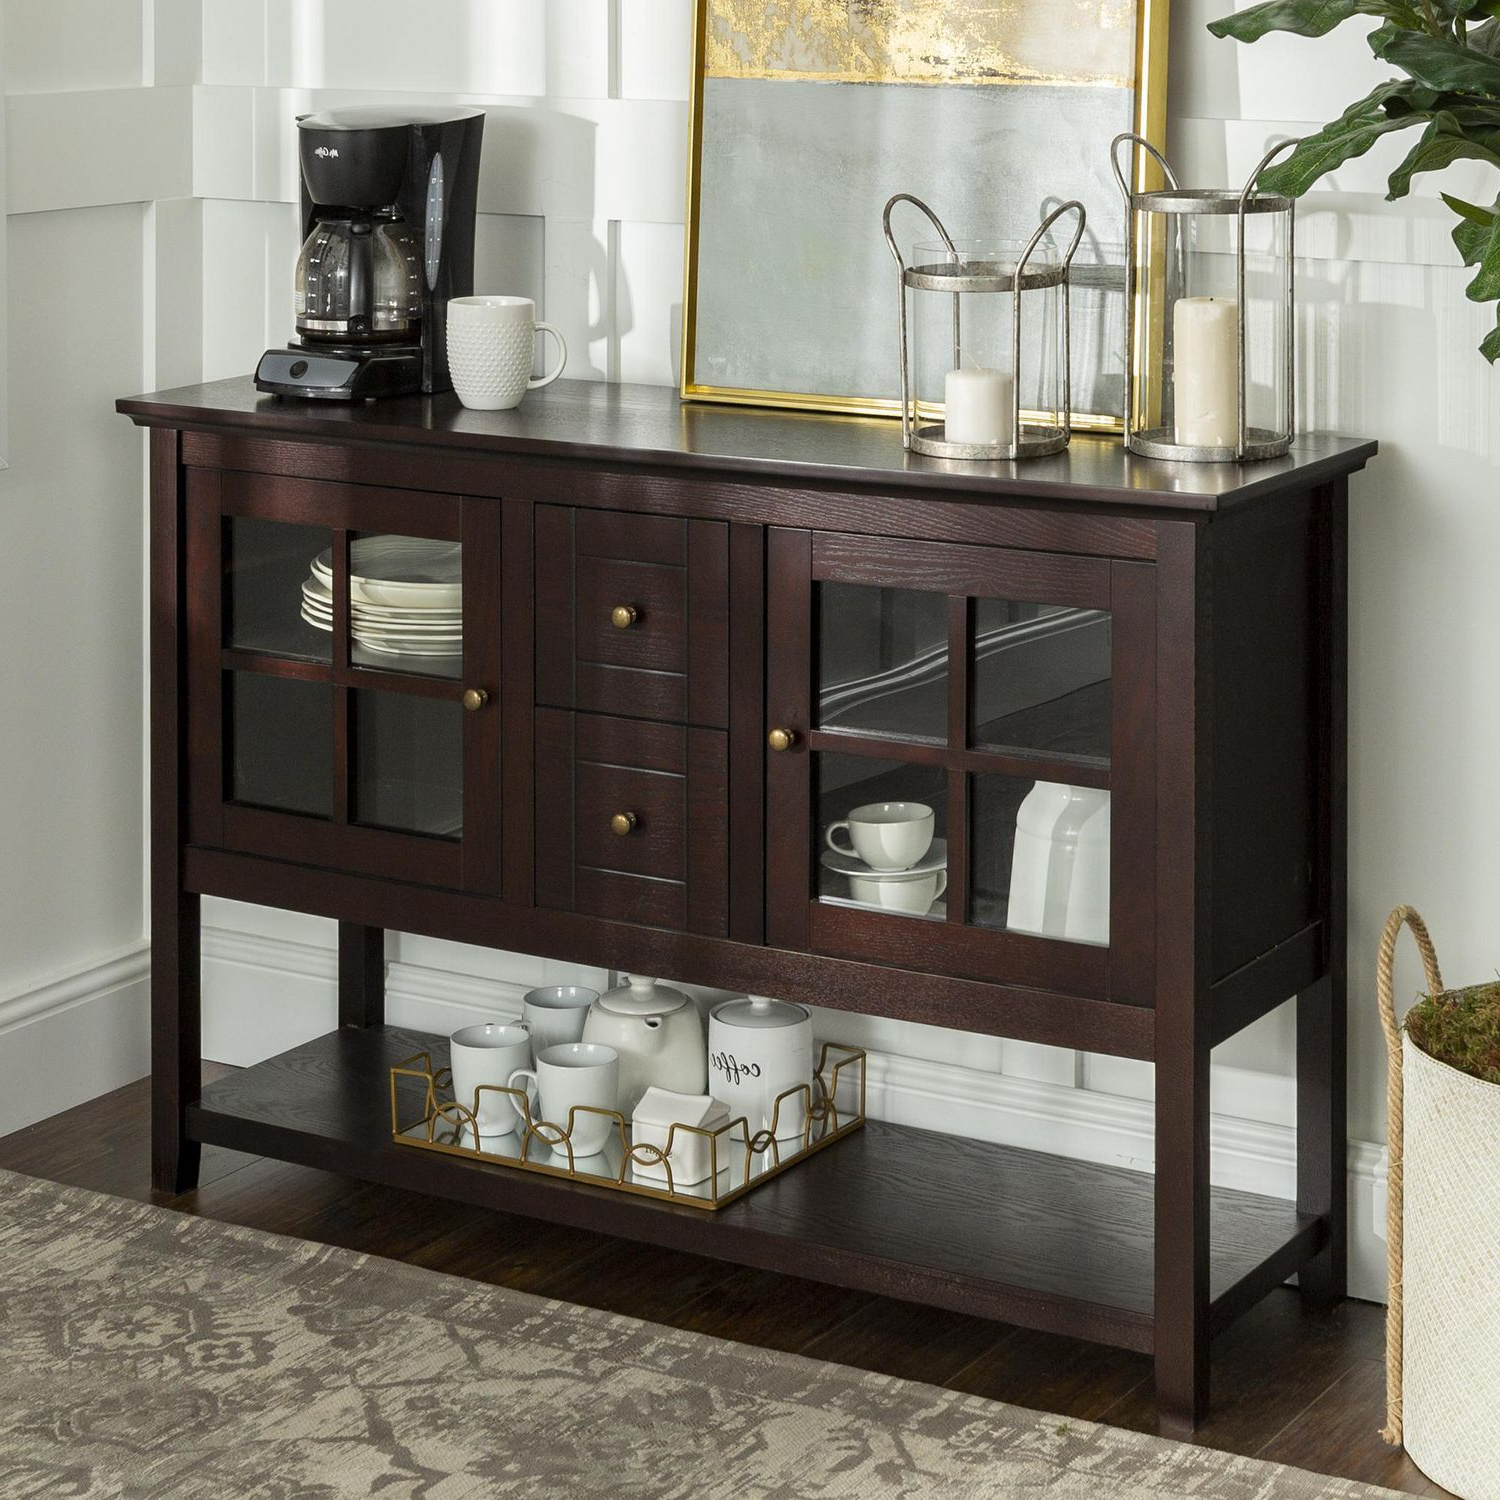 We Furniture Walker Edison Espresso Wood Console Table Buffet Tv Stand Within Espresso Wood Multi Use Buffets (View 20 of 20)